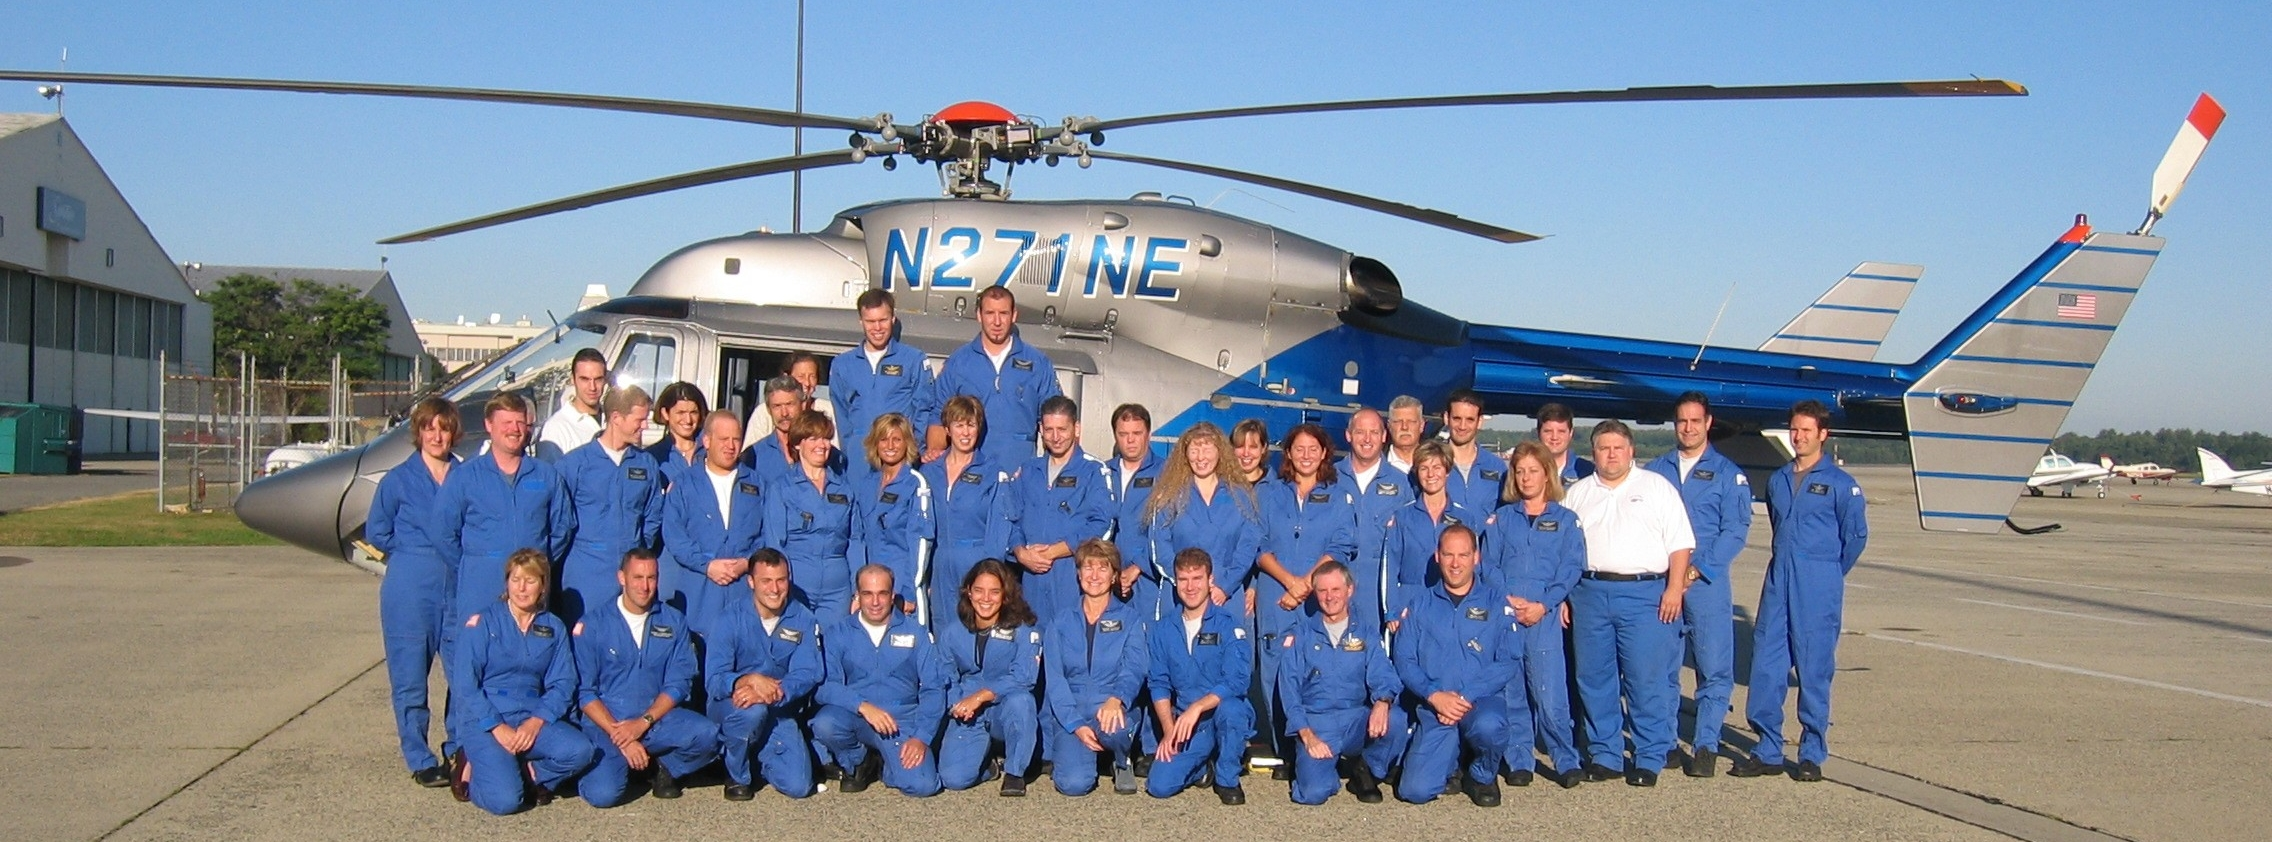 MedFlight Team, circa 2004